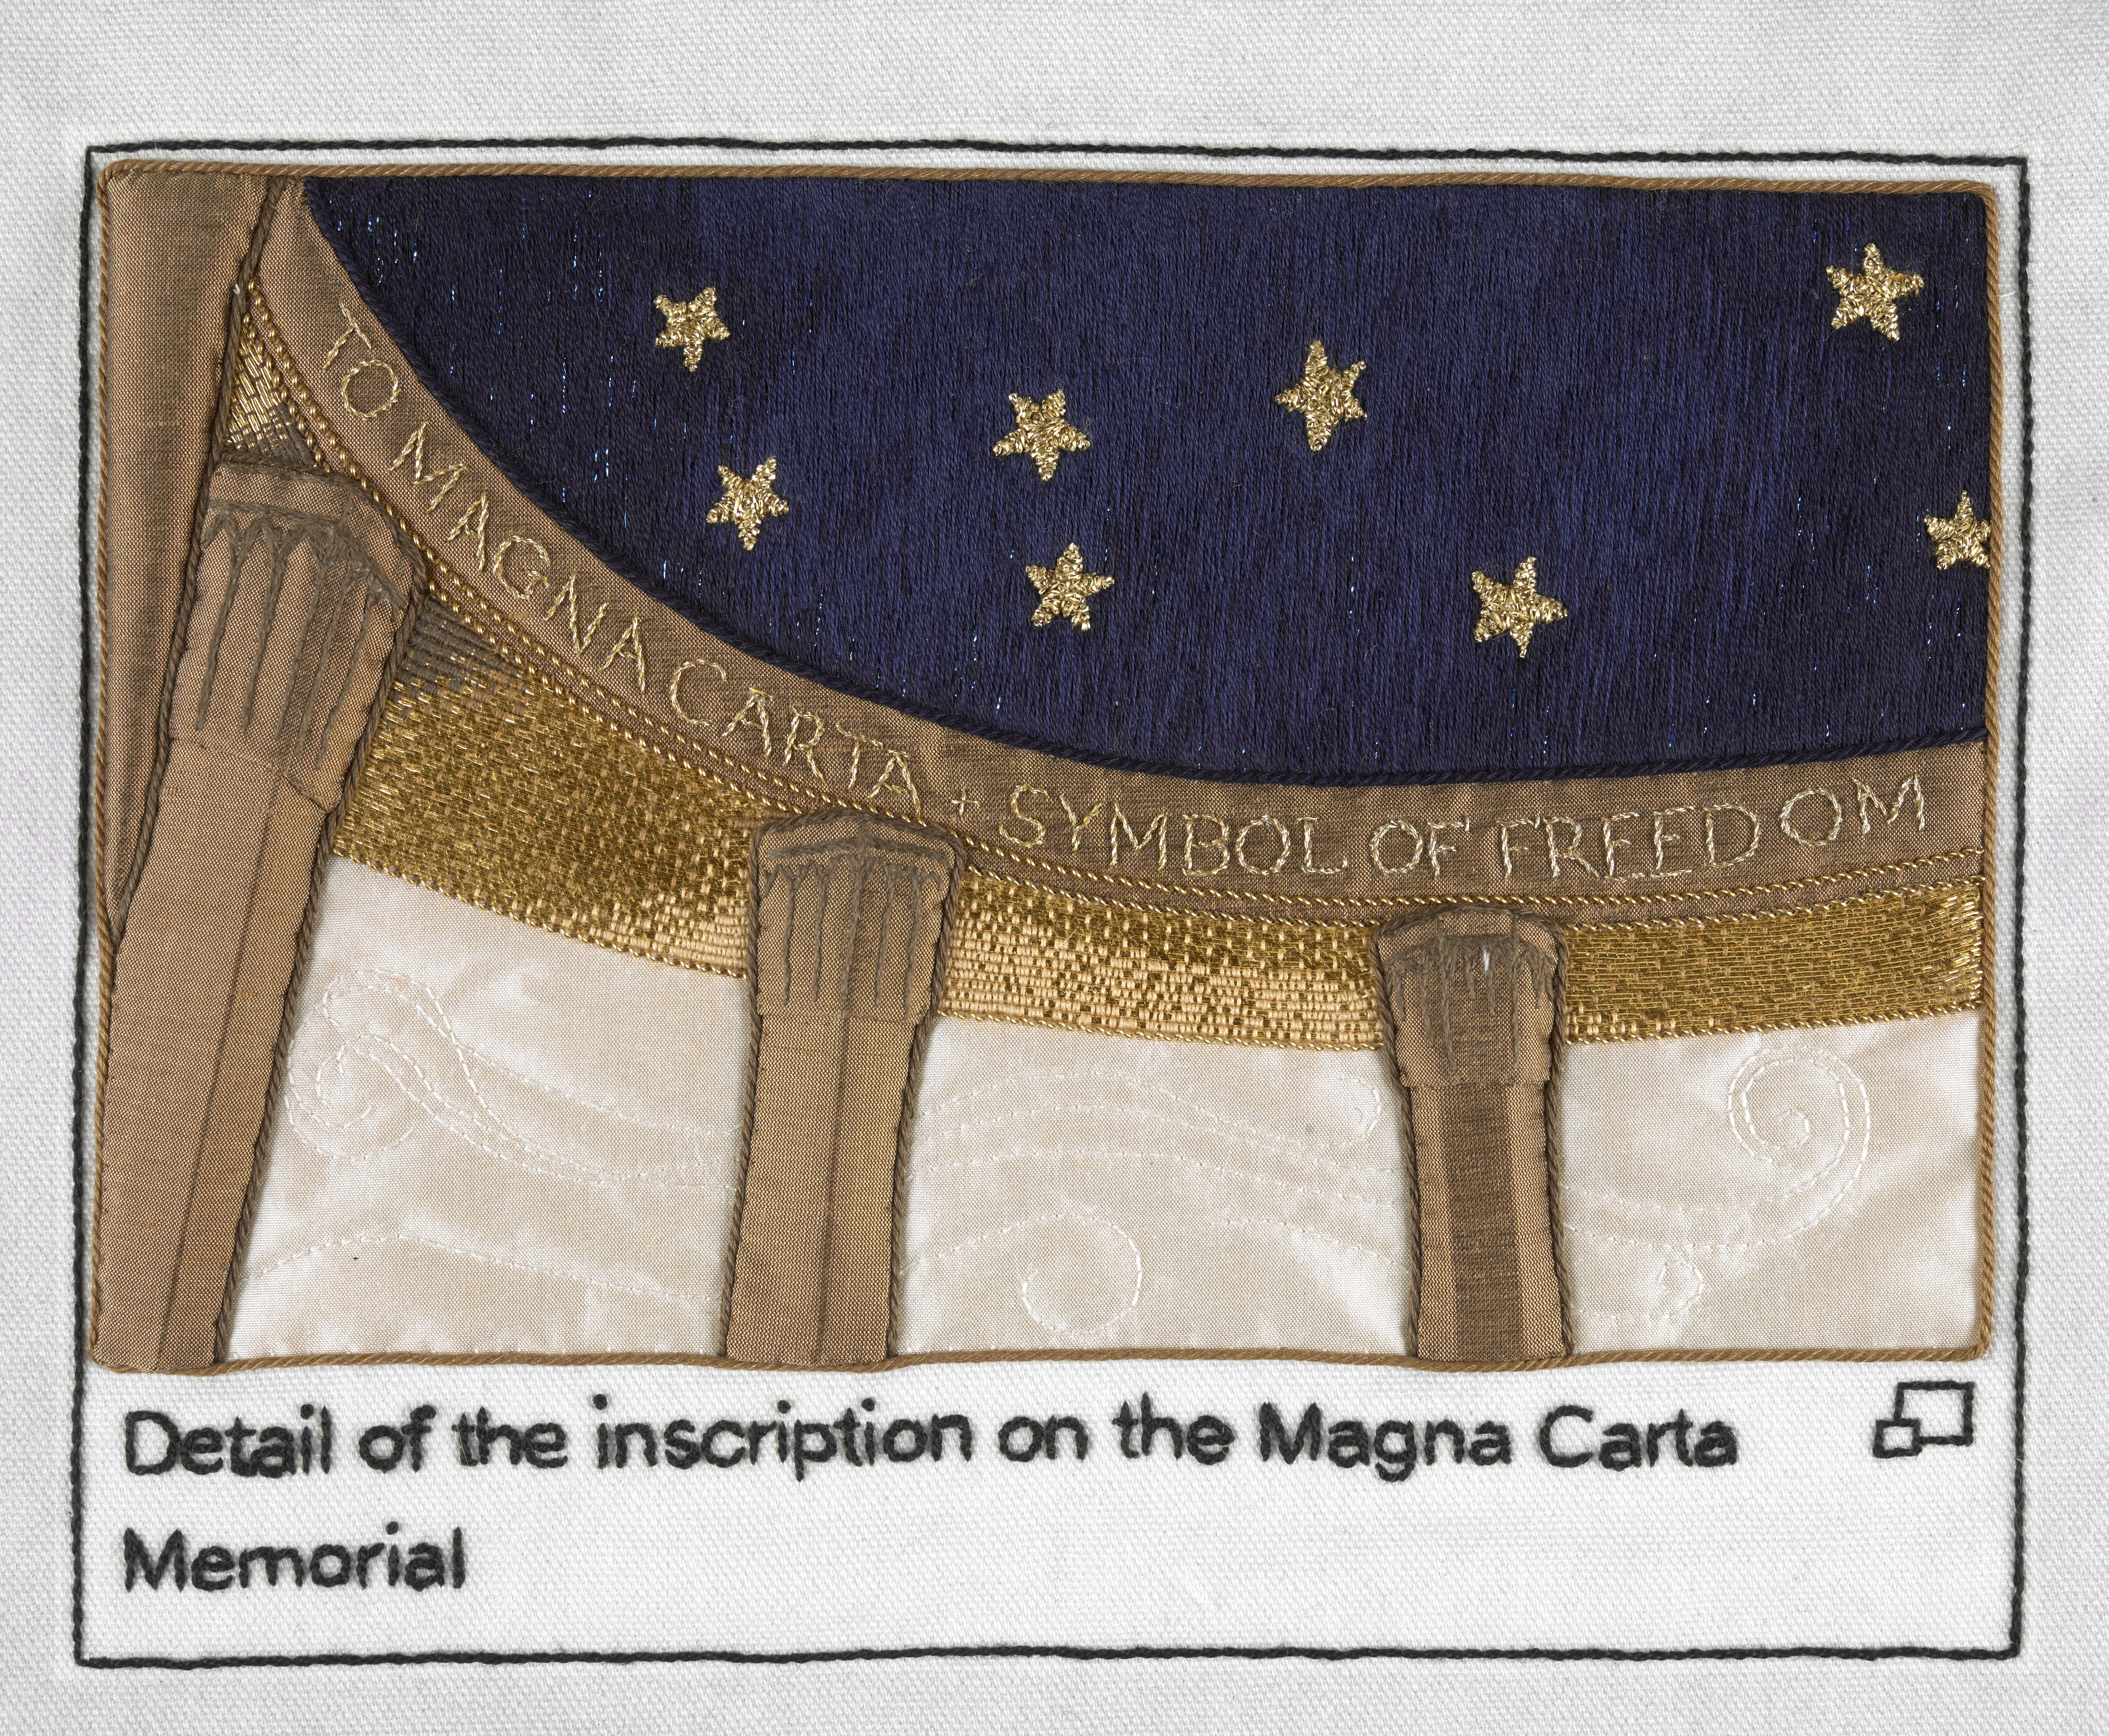 Inscription on the Magna Carta Memorial stitched by Pippa Foulds, Embroiderers' Guild (Yorkshire and The Humber Region). Part of Cornelia Parker's Magna Carta (An Embroidery) at the British Library.